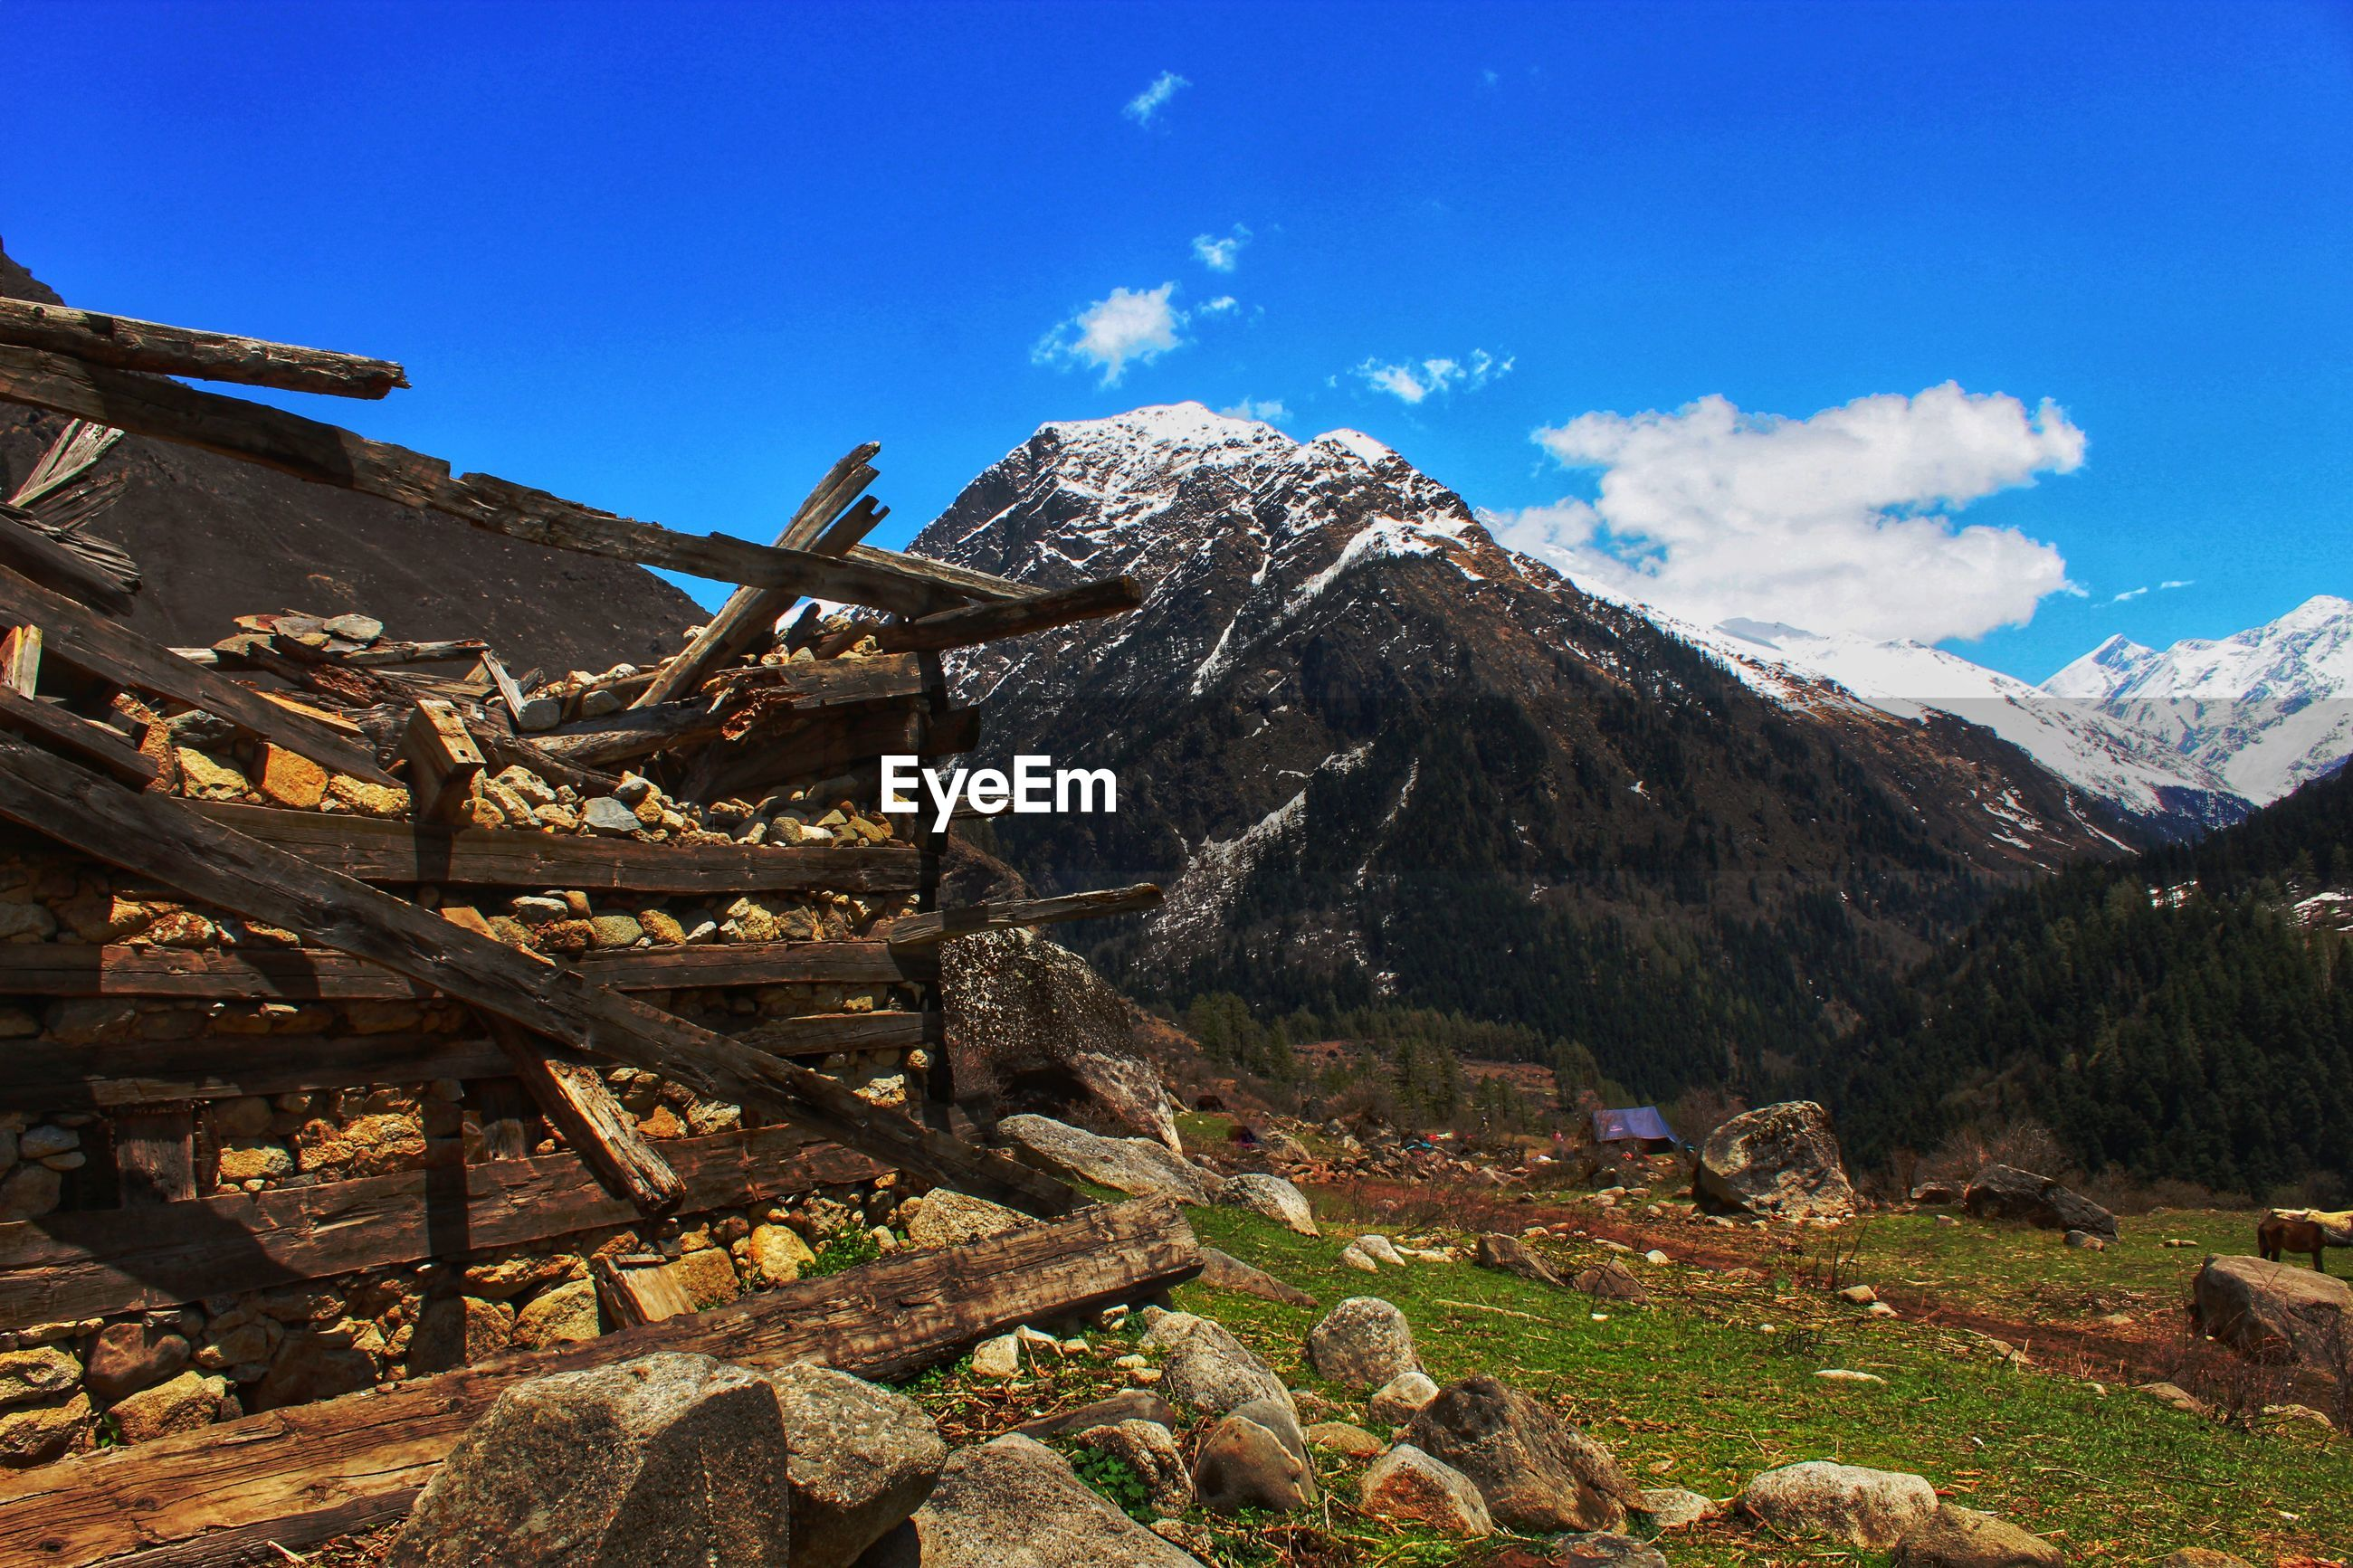 Scenic view of ruined hut with snowcapped mountains against blue sky